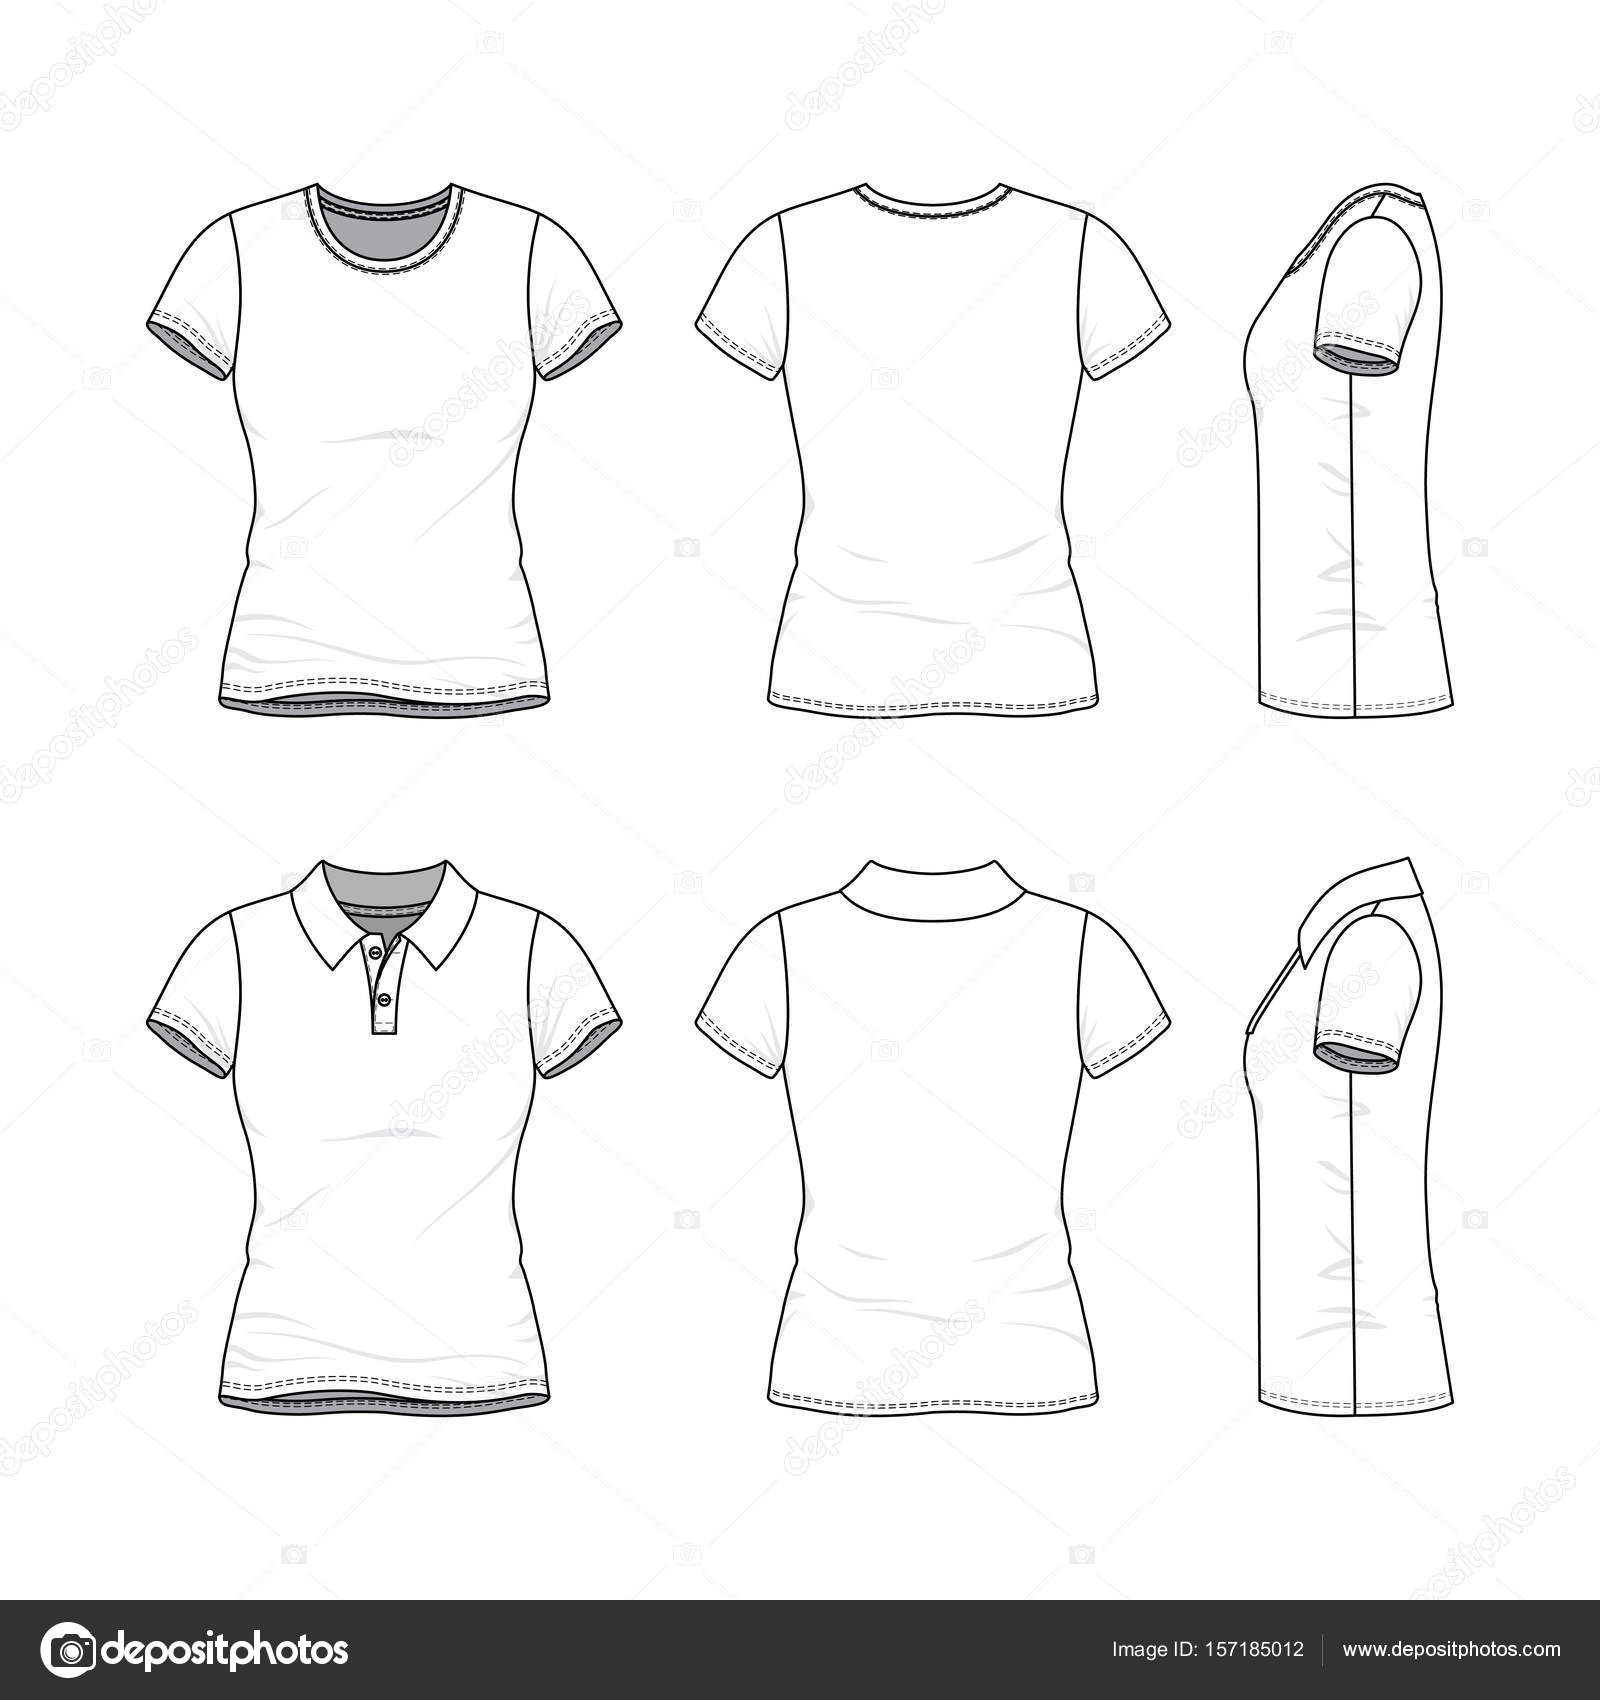 Templates of female t-shirt and polo shirt. — Stock Vector ...